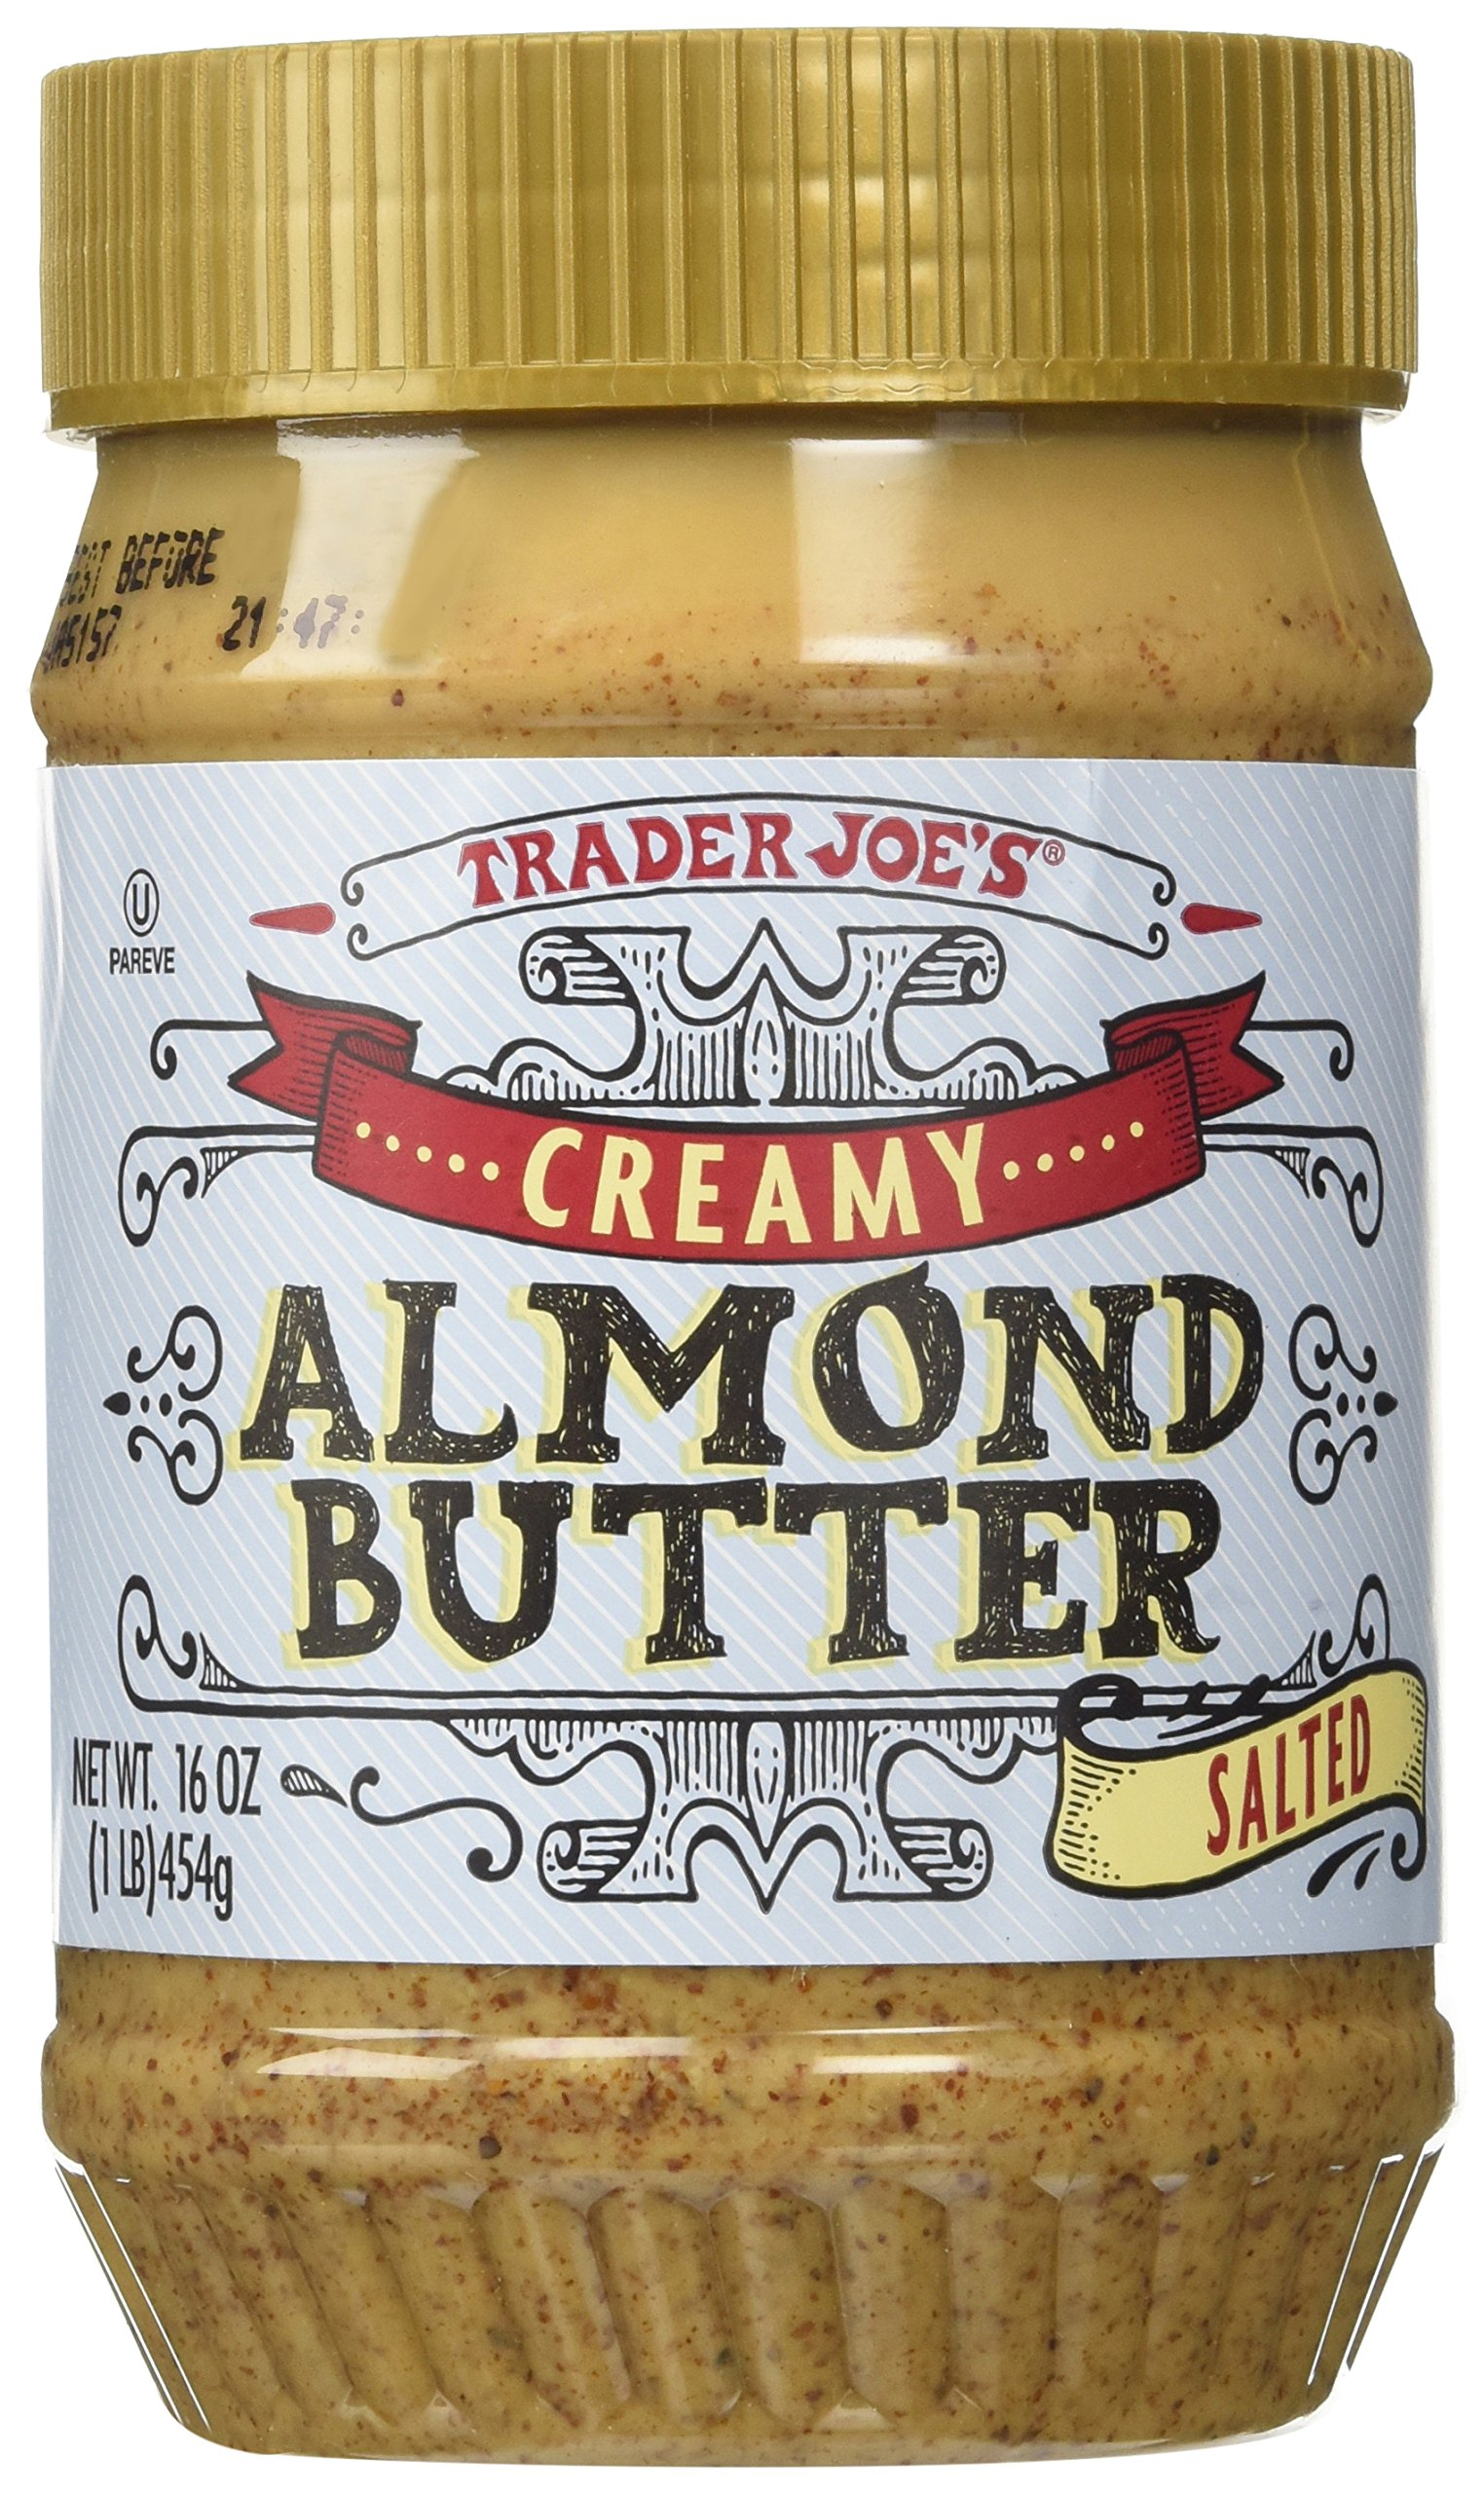 Premise Indicator Words: Amazon.com : Trader Joes Crunchy Almond Butter Salted (2